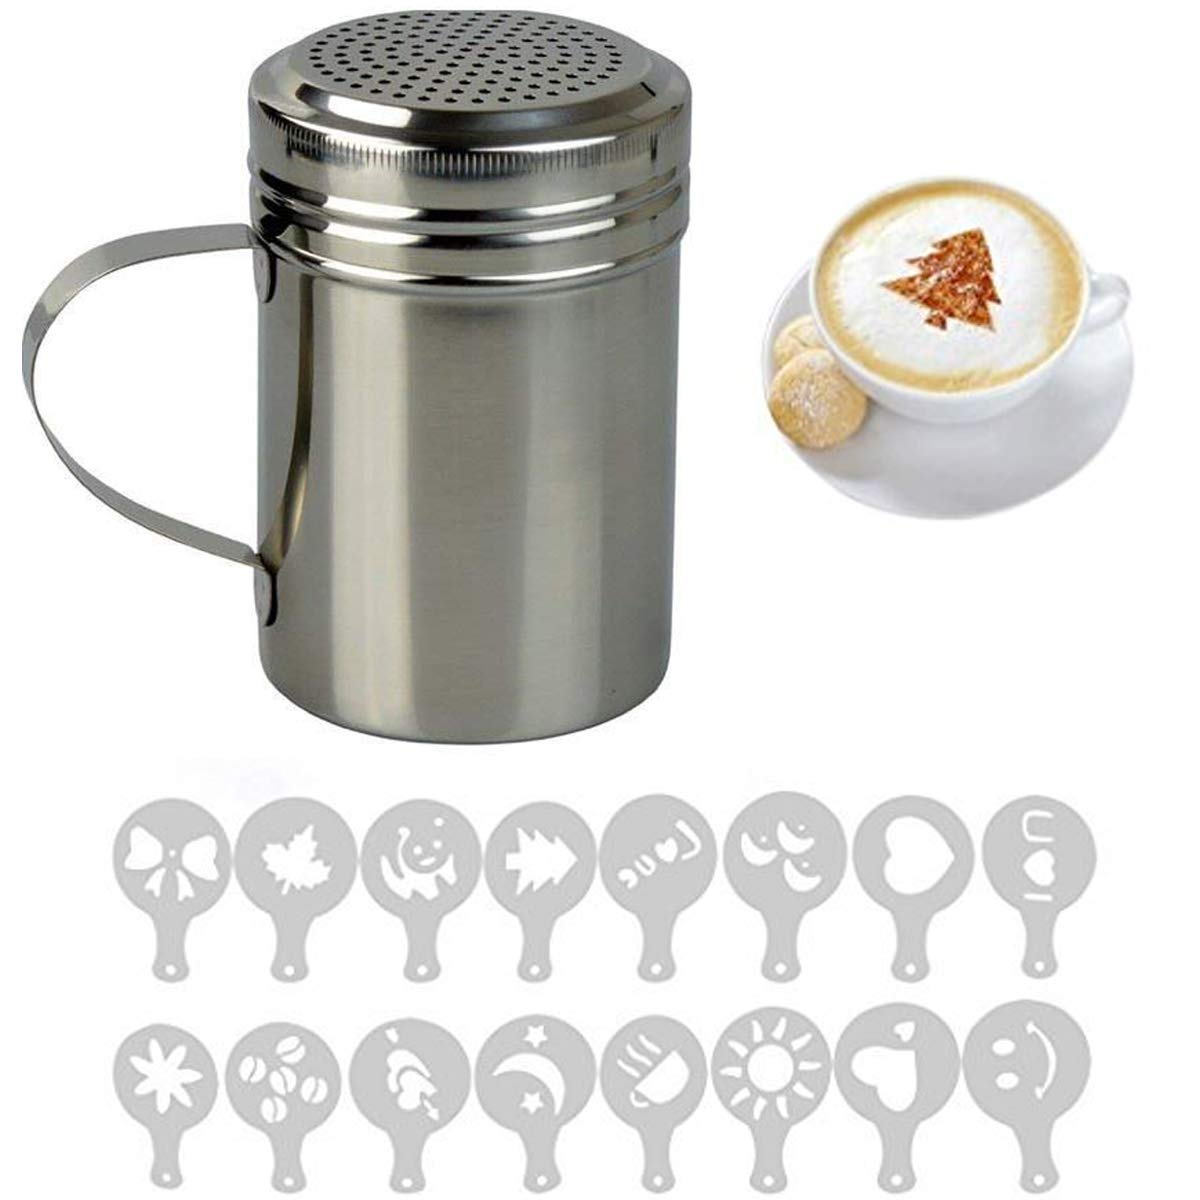 Fineway-Stainless-Steel-Chocolate-Shaker-Duster-with-16-Cappuccino-Coffee-Barista-Stencils